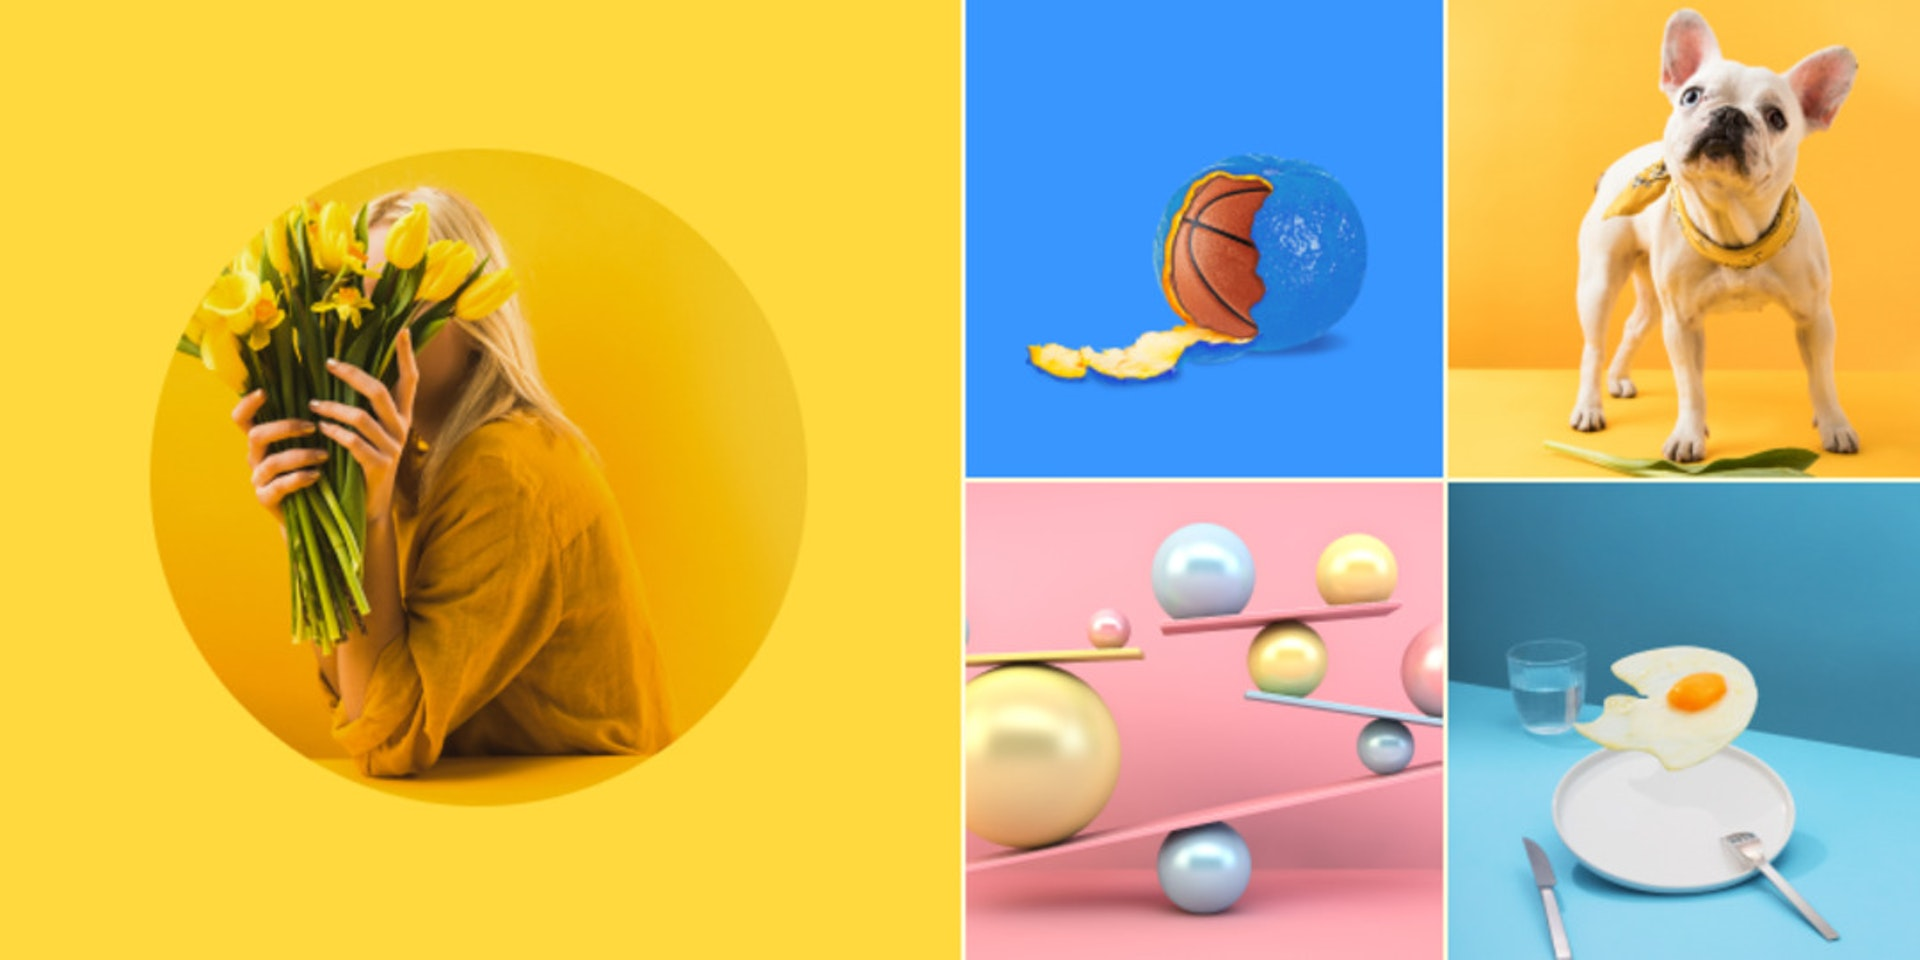 Graphic design trends to stand out in 2021